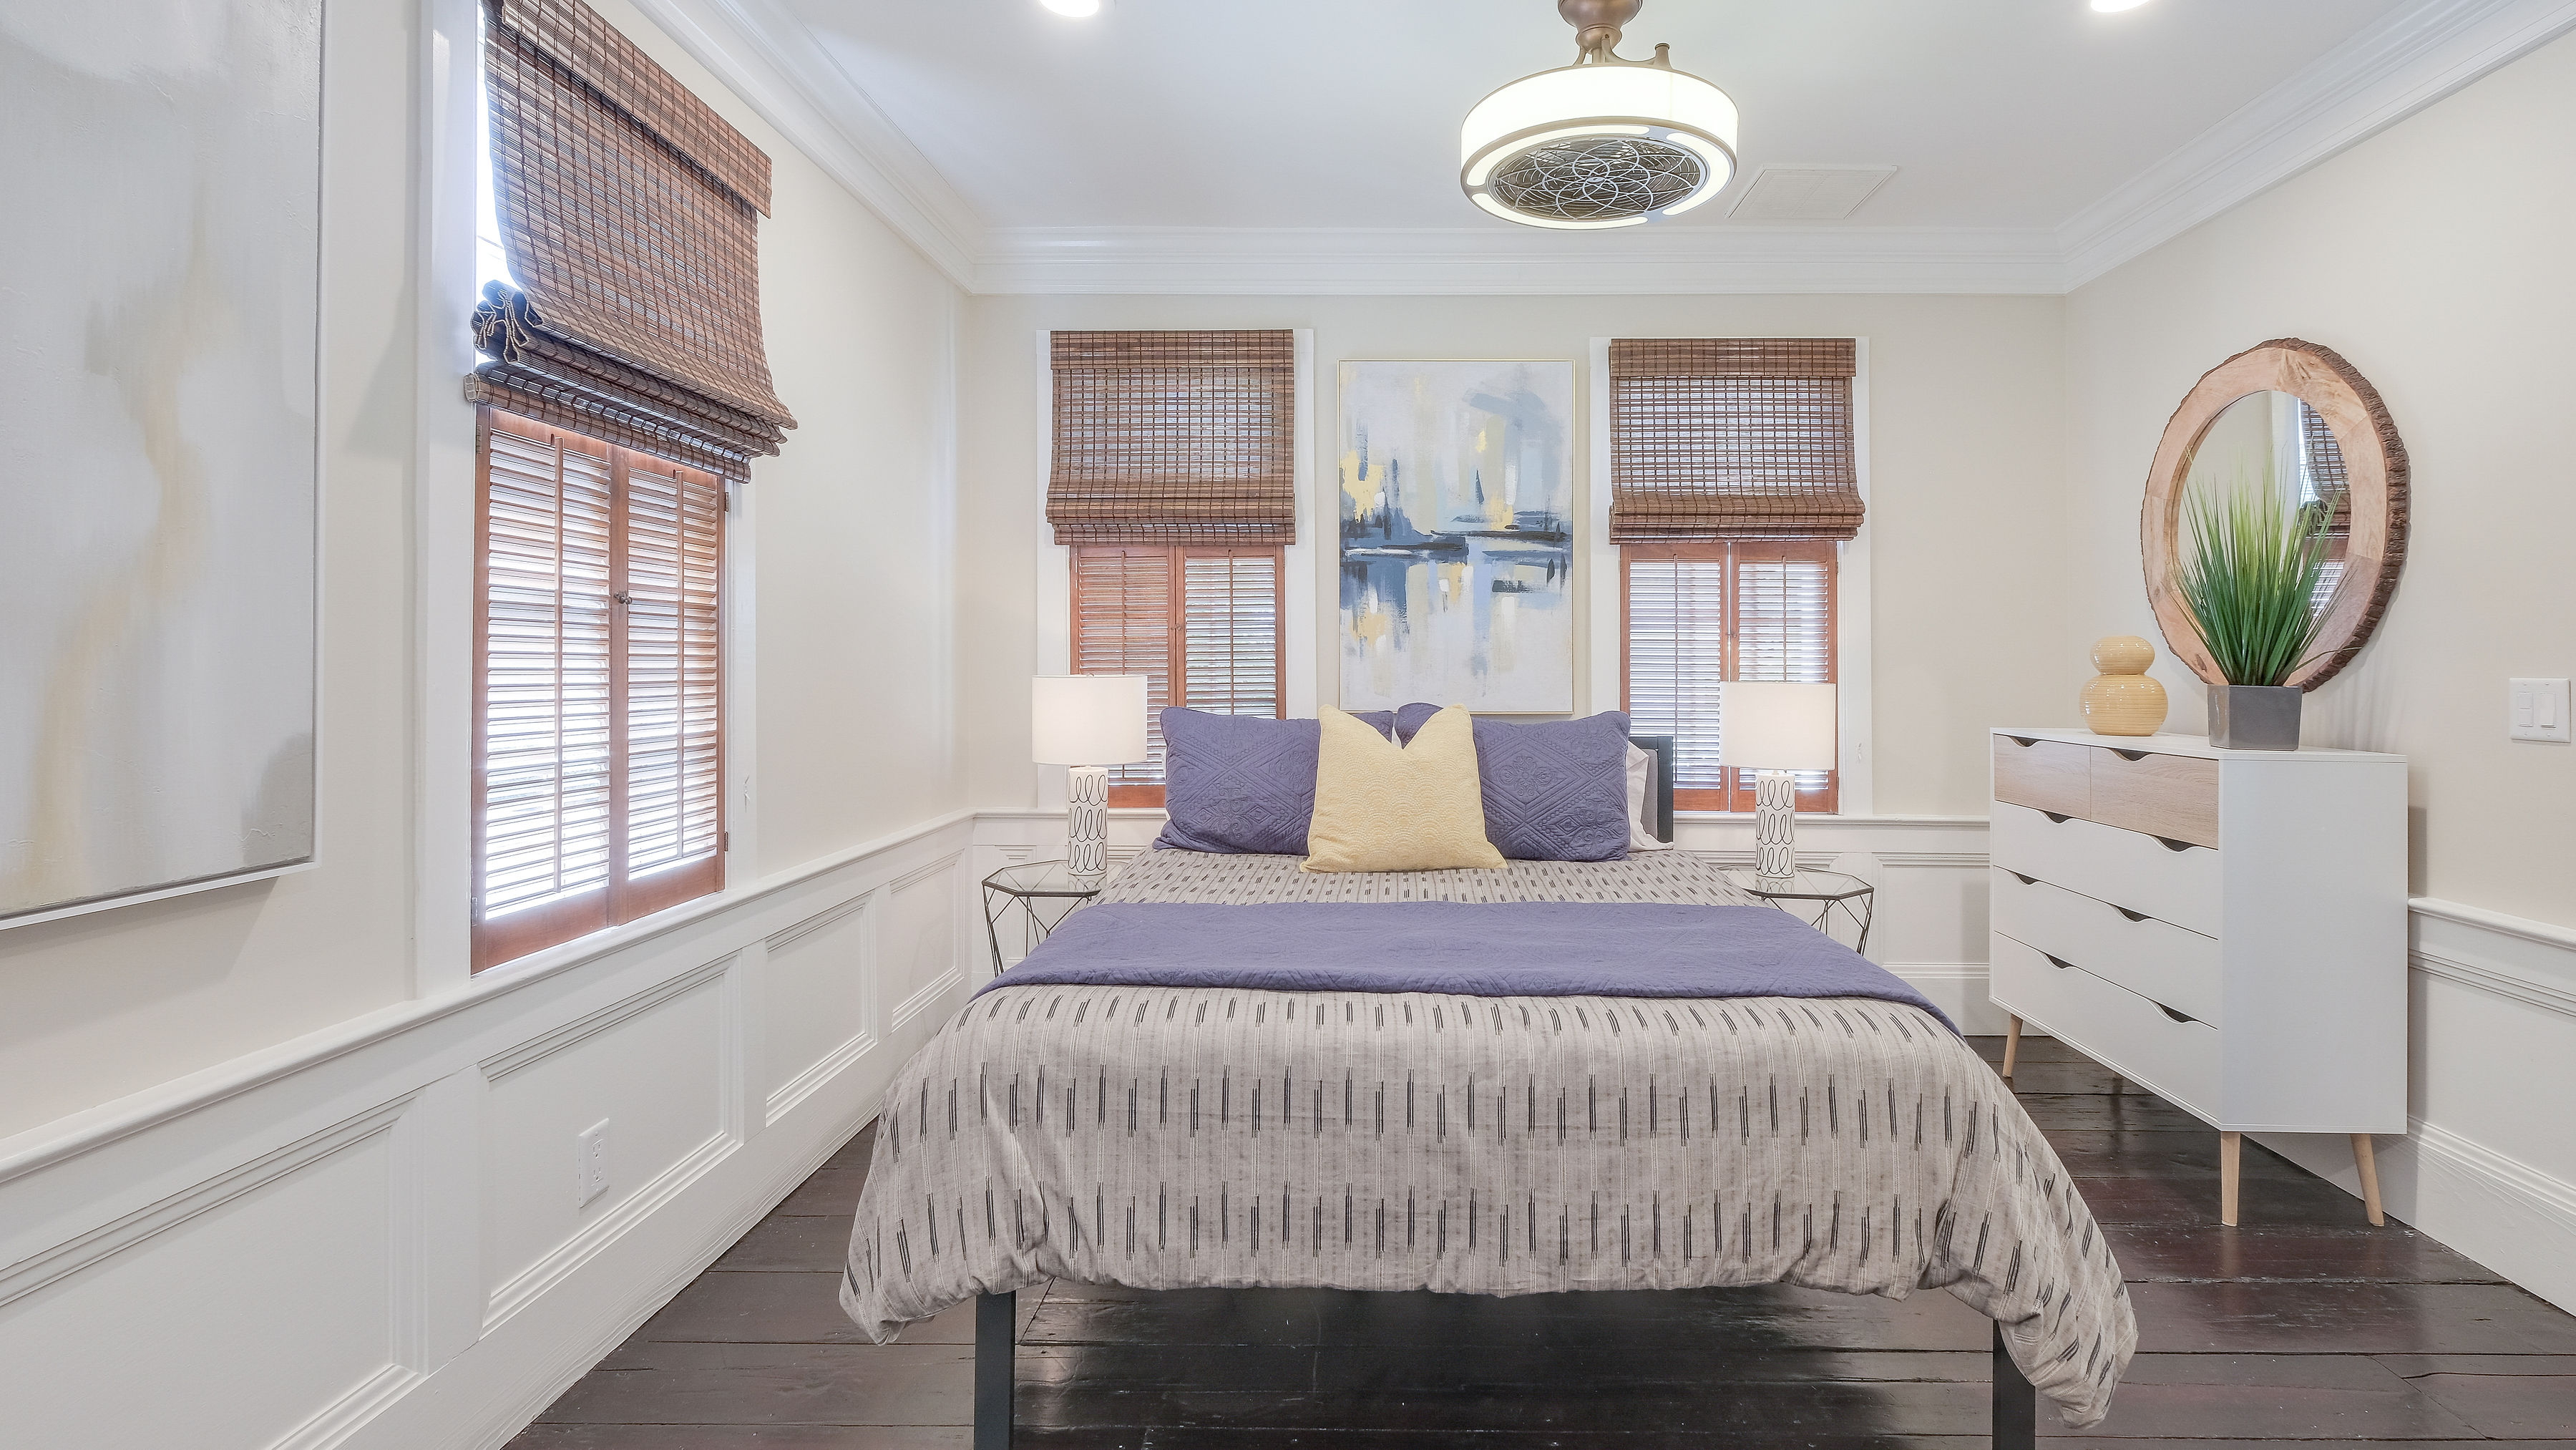 Downstairs bedroom with a queen bed